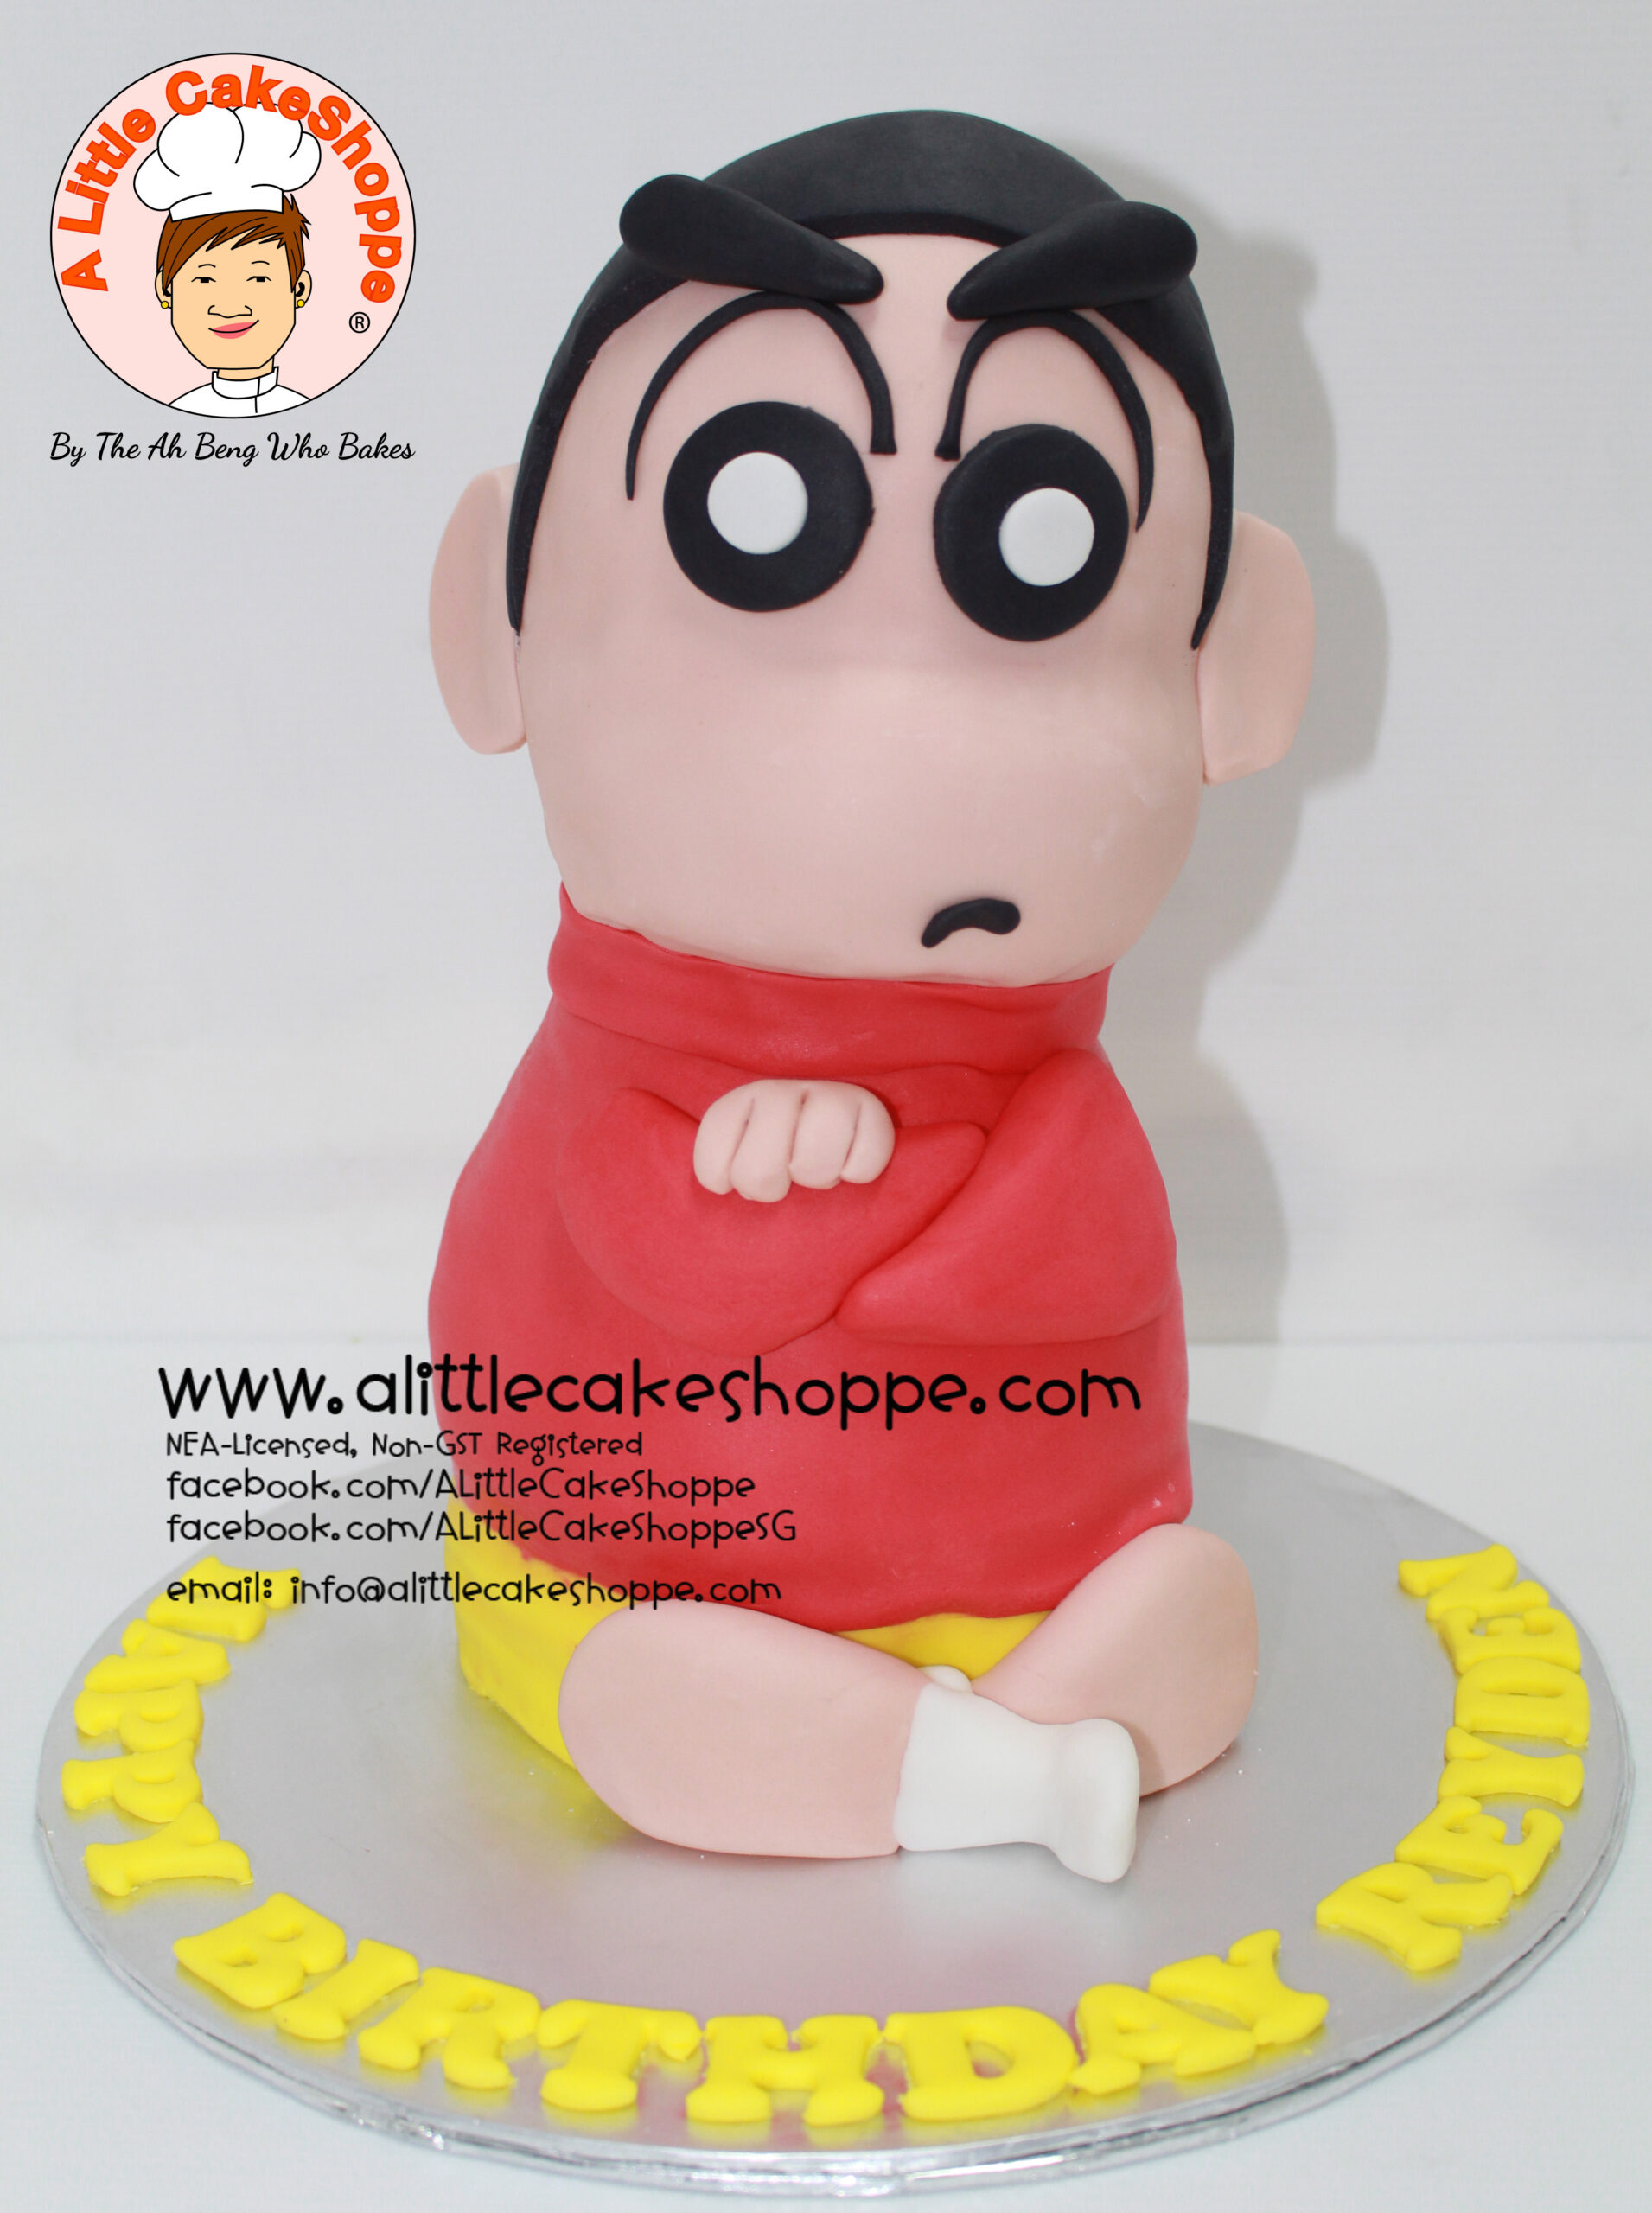 Best Customised Cake Shop Singapore custom cake 2D 3D birthday cake cupcakes desserts wedding corporate events anniversary 1st birthday 21st birthday fondant fresh cream buttercream cakes alittlecakeshoppe a little cake shoppe compliments review singapore bakers SG cake shop cakeshop ah beng who bakes crayon shin chan la bi xiao xin